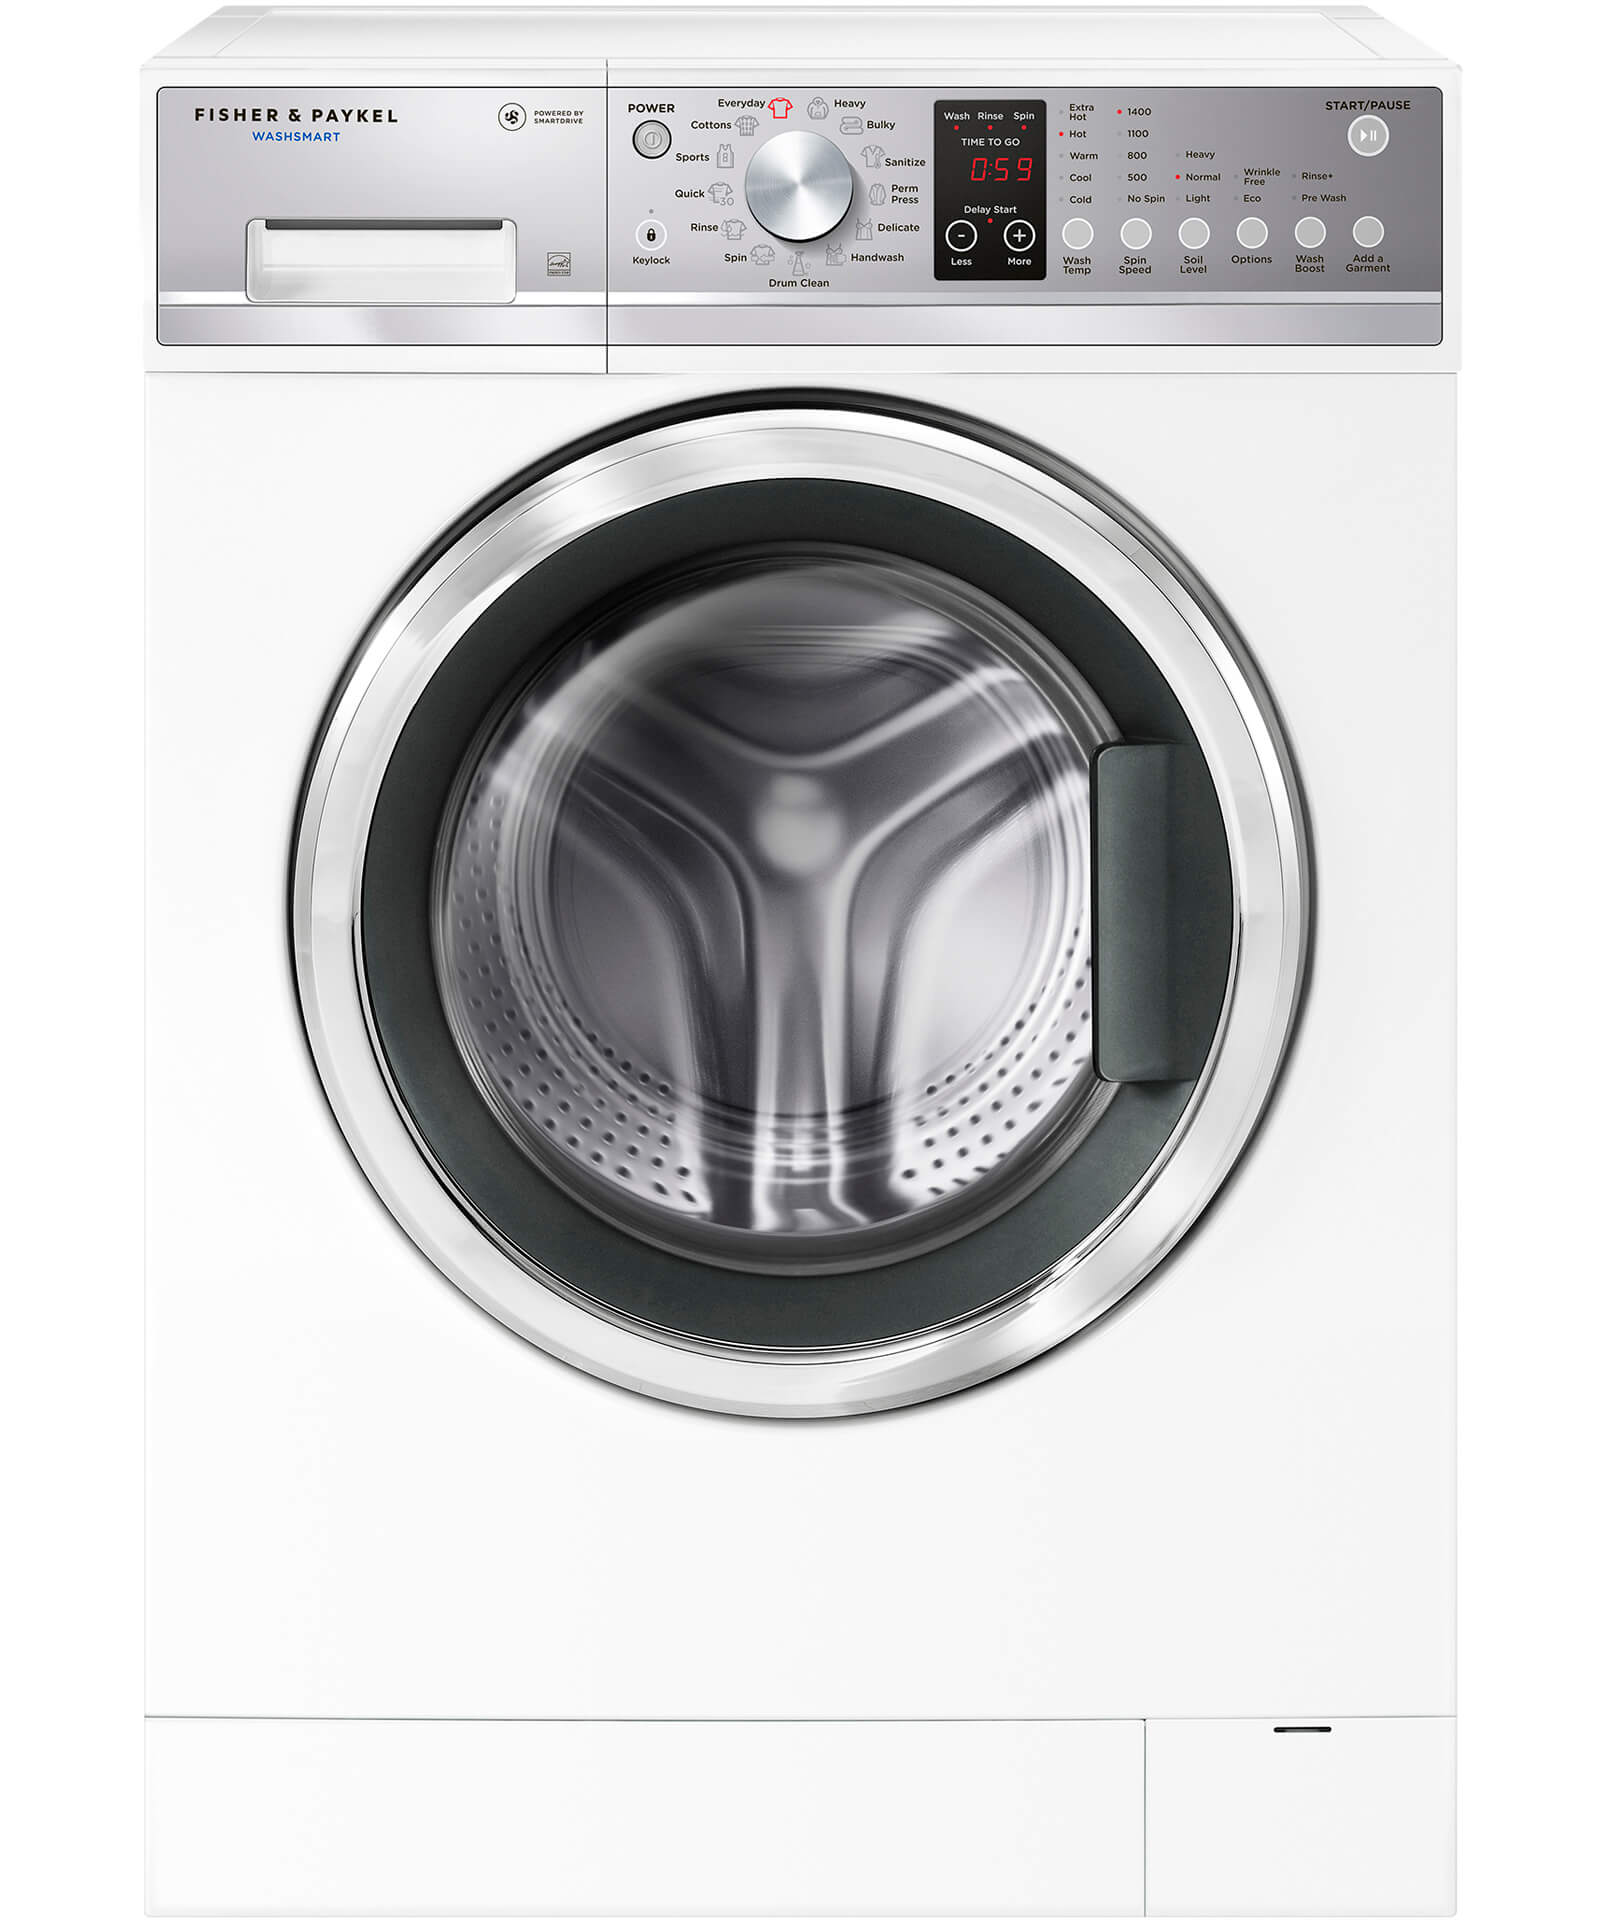 WH2424P1 - WashSmart™ Front Load Washer - 96236